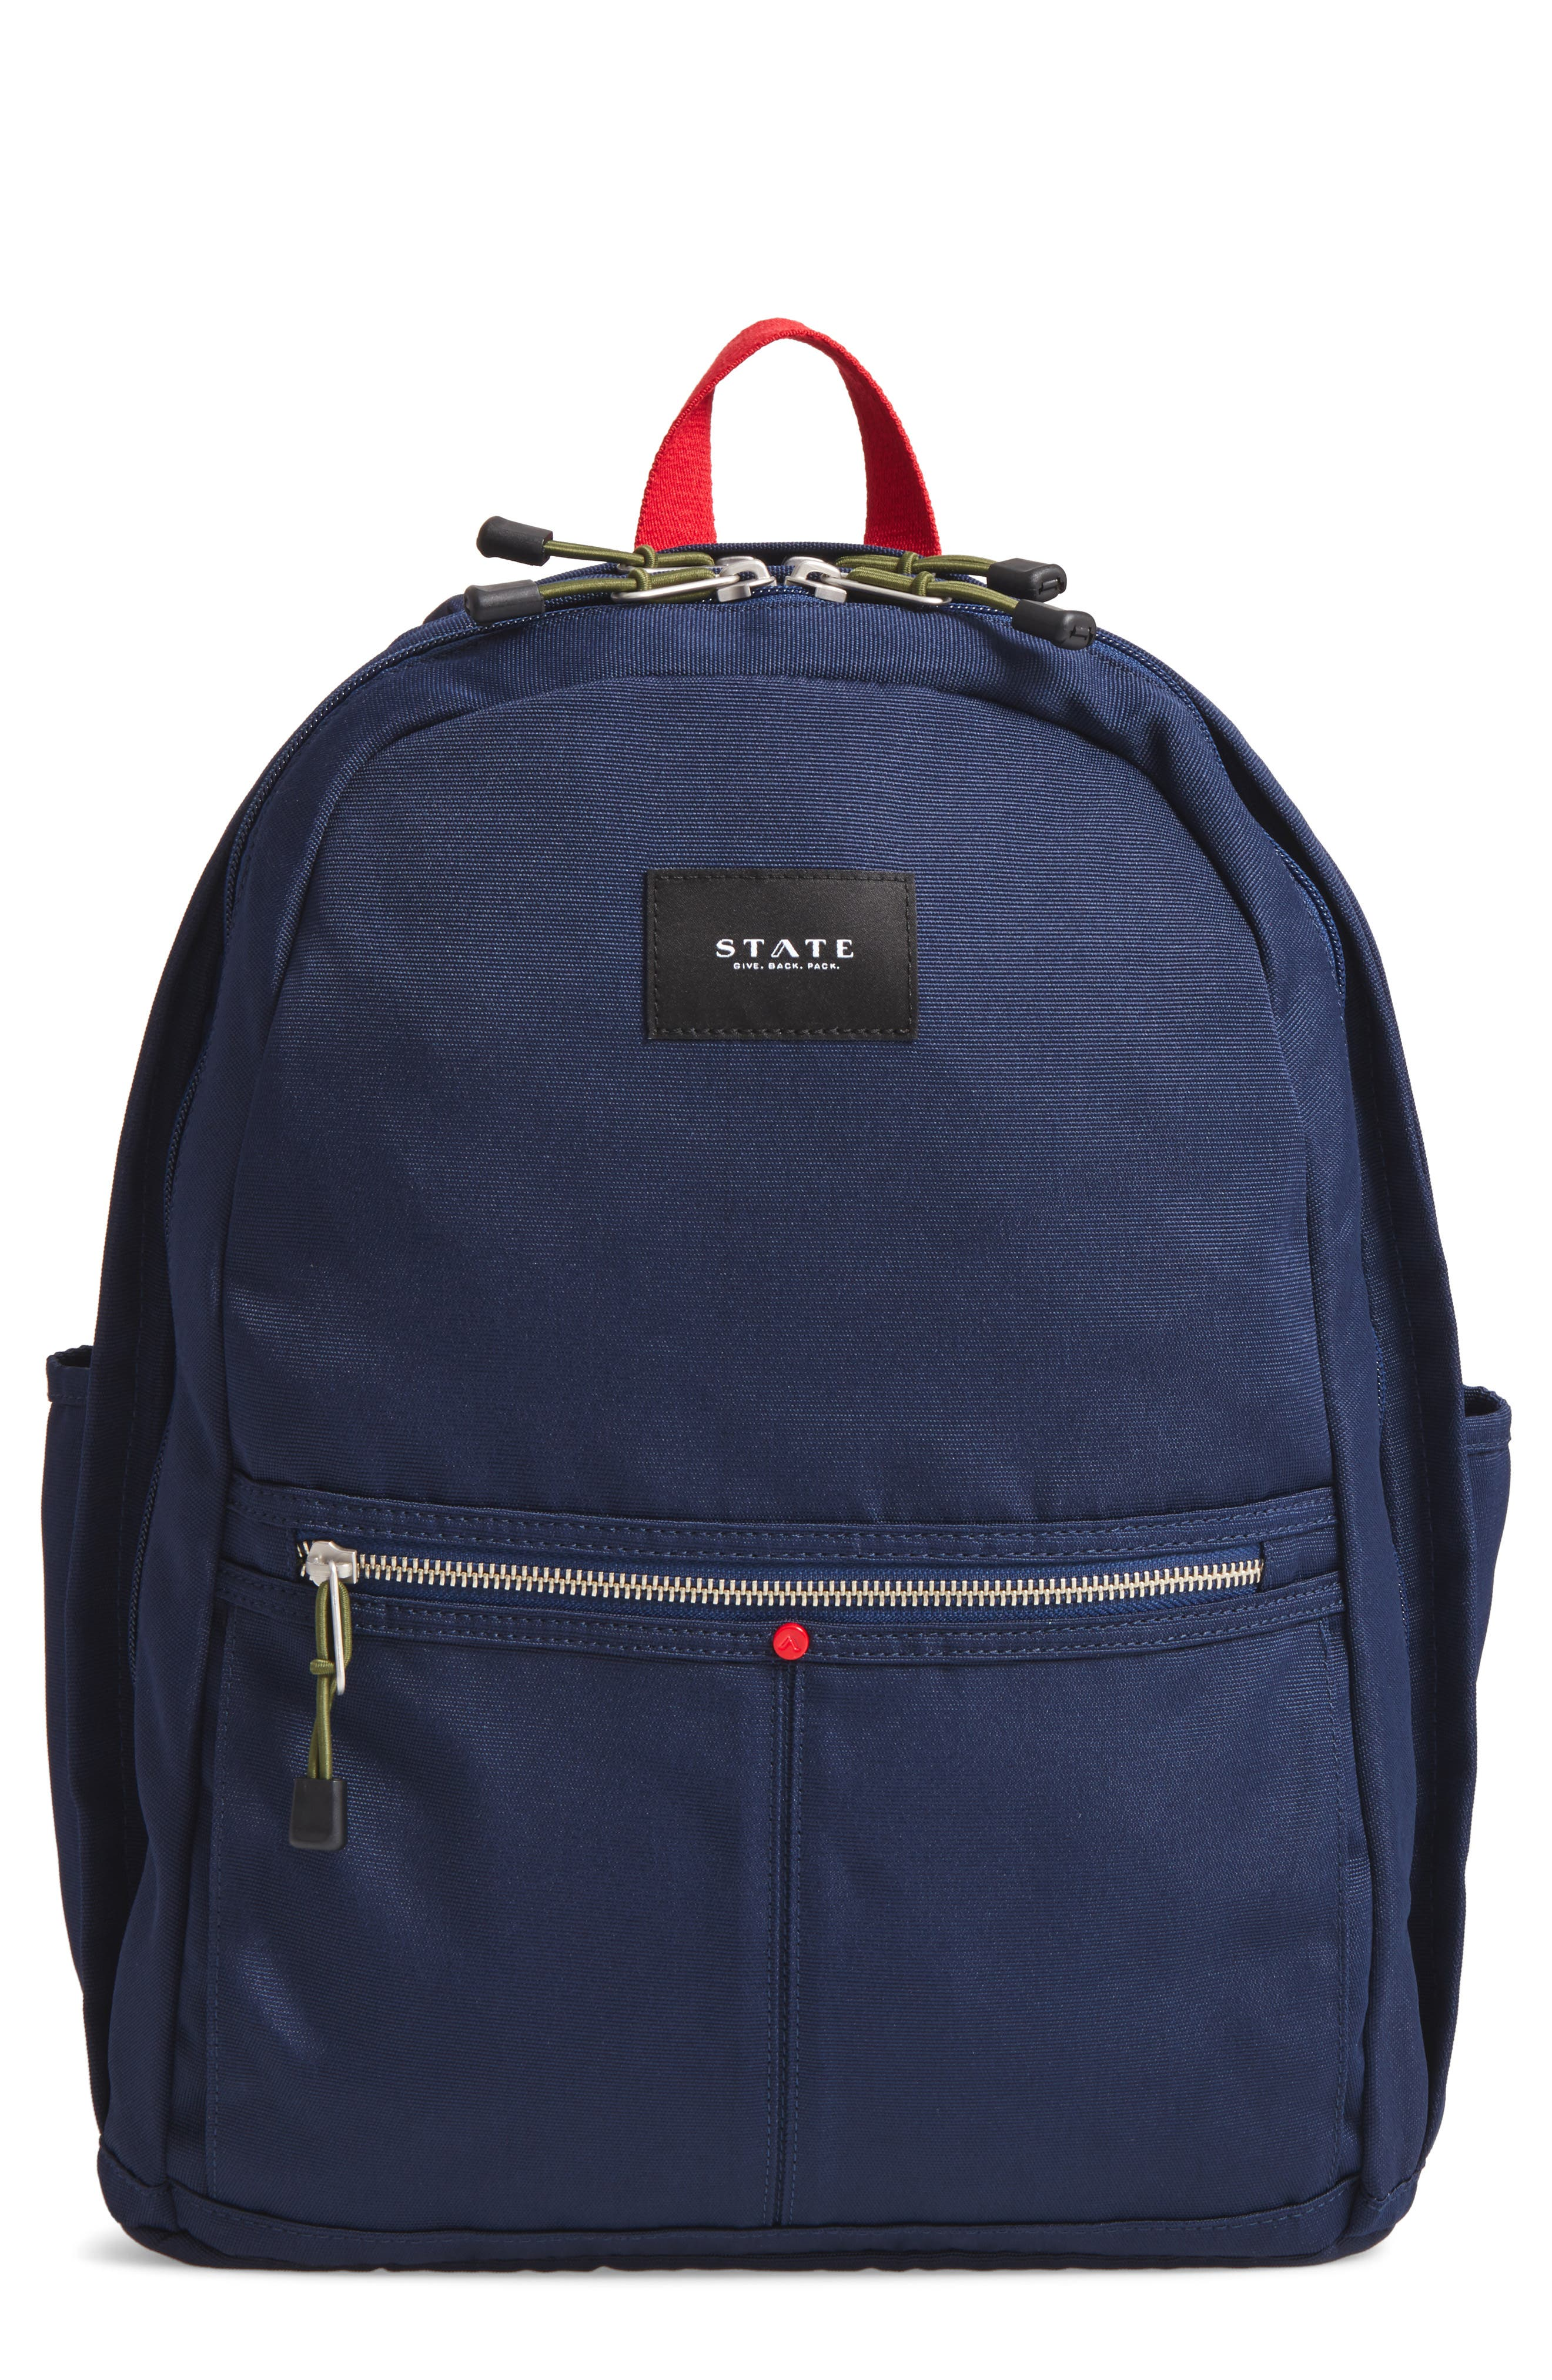 Williamsburg Bedford Backpack,                         Main,                         color, Navy